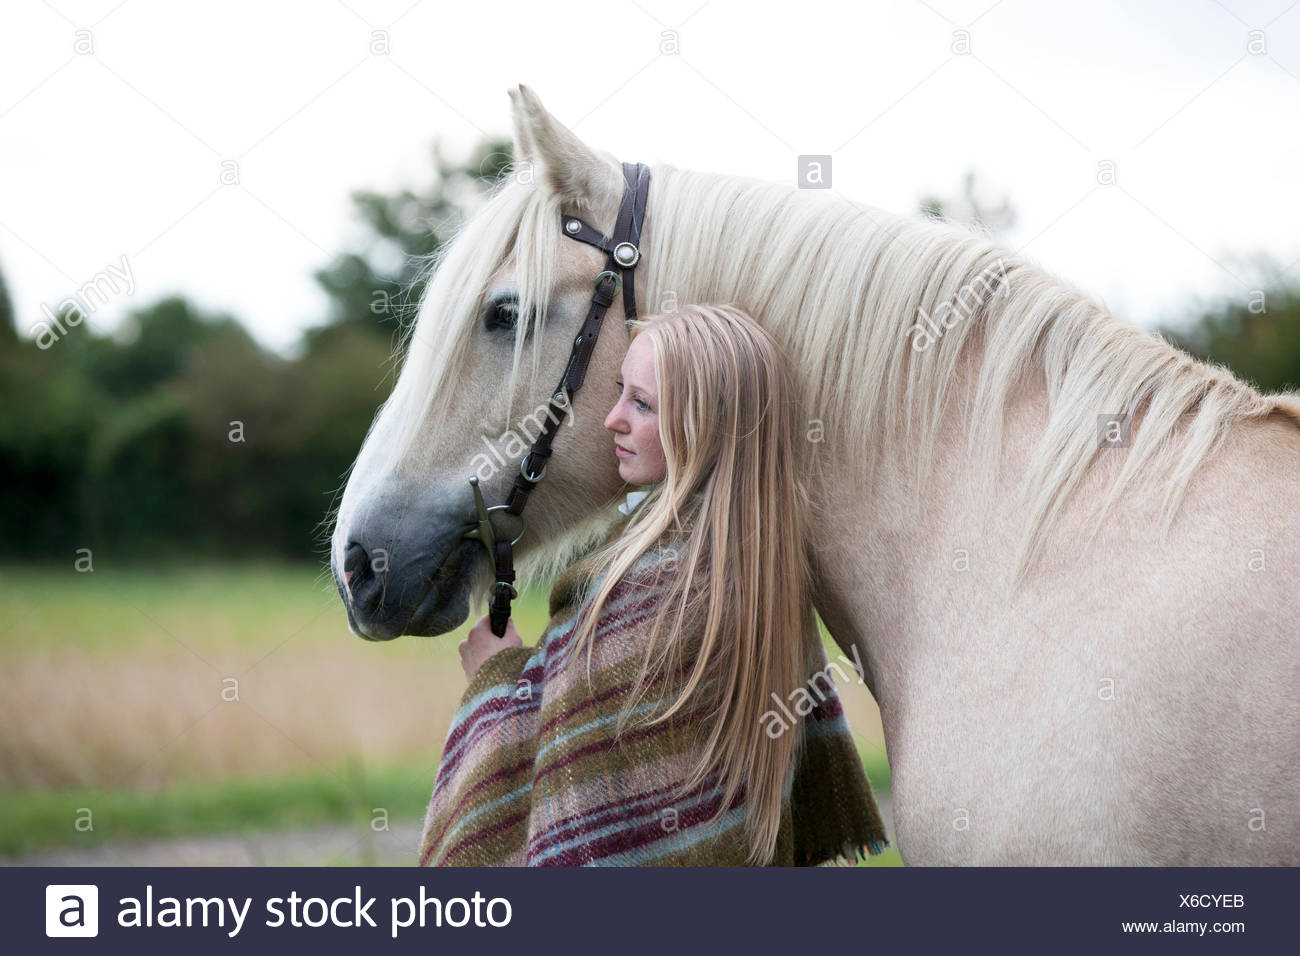 A young woman standing next to a palomino horse - Stock Image